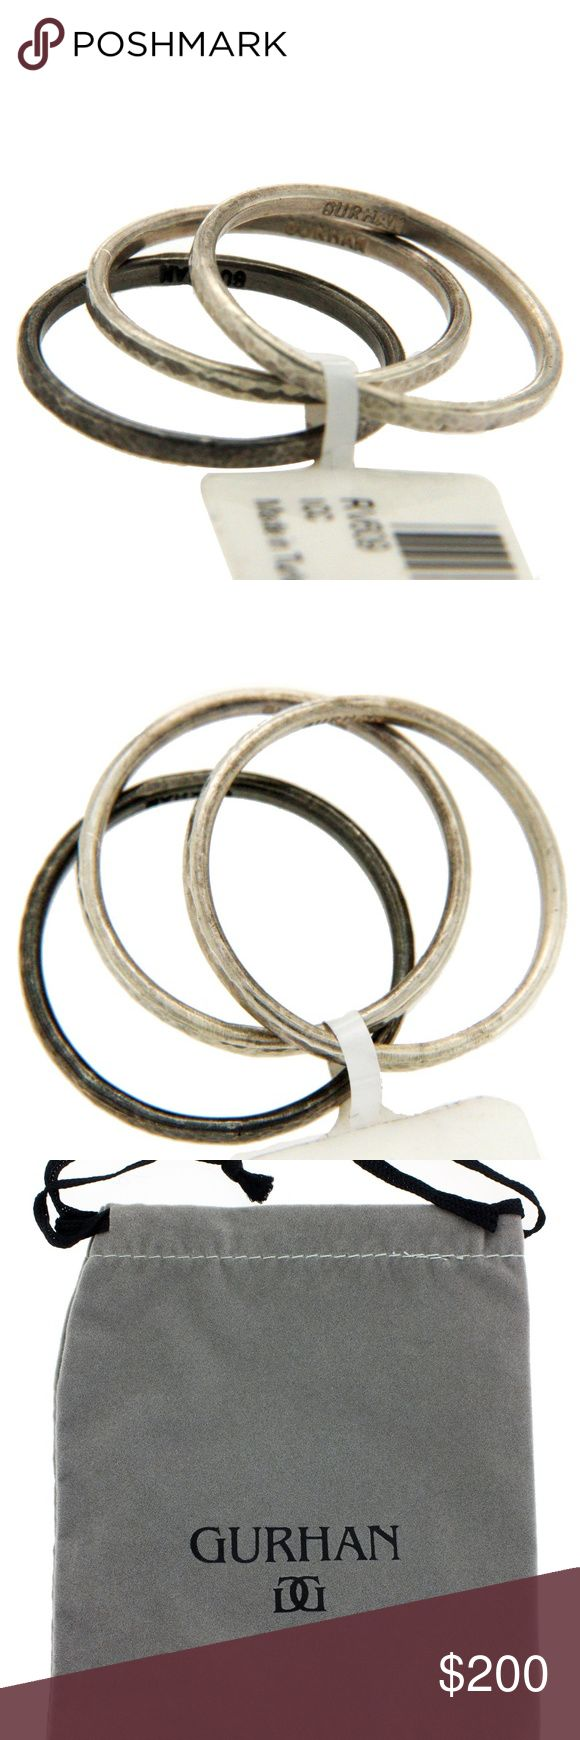 GURHAN 925 Sterling Silver Set Of 3 Midnight Ring GURHAN 925 Sterling Silver Set Of 3 Midnight Band Ring  Type: Ring Top: 5 mm Band Width: 5 mm Metal: Sterling Silver Metal Purity: 925  Size:6.5 Hallmarks: Gurhan Total Weight: 2.5 Grams Stone Type: None Condition: New Stock Number: U419 Gurhan Jewelry Rings